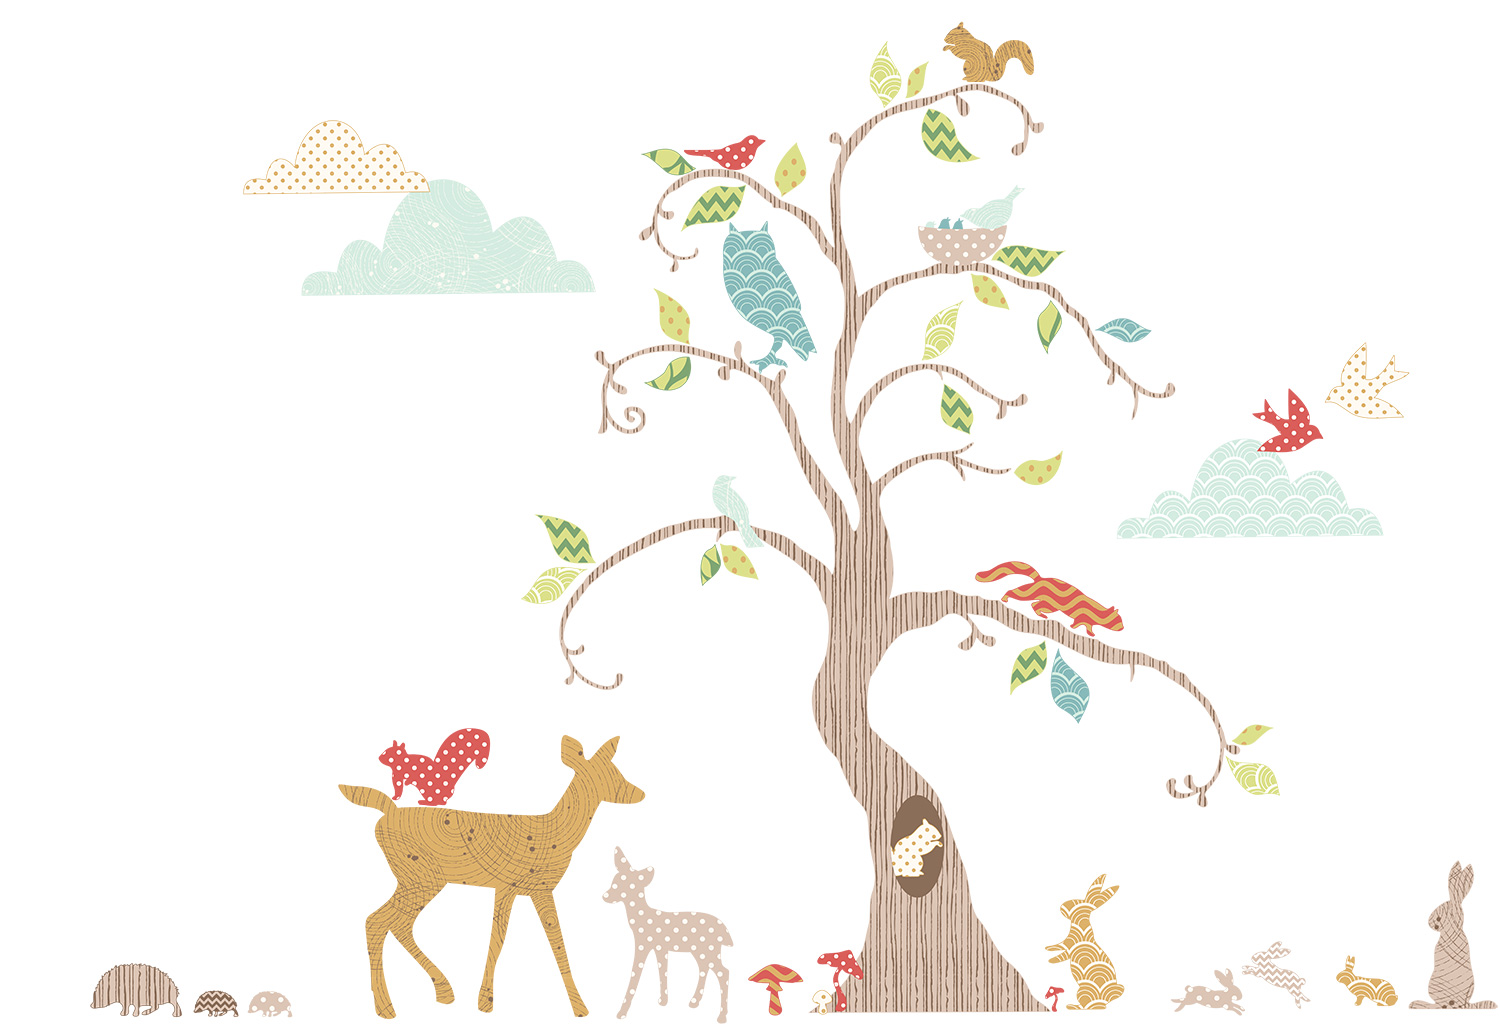 Funtosee wandtattoo waldtiere am baum wandsticker deko set for Pegatinas de pared ikea